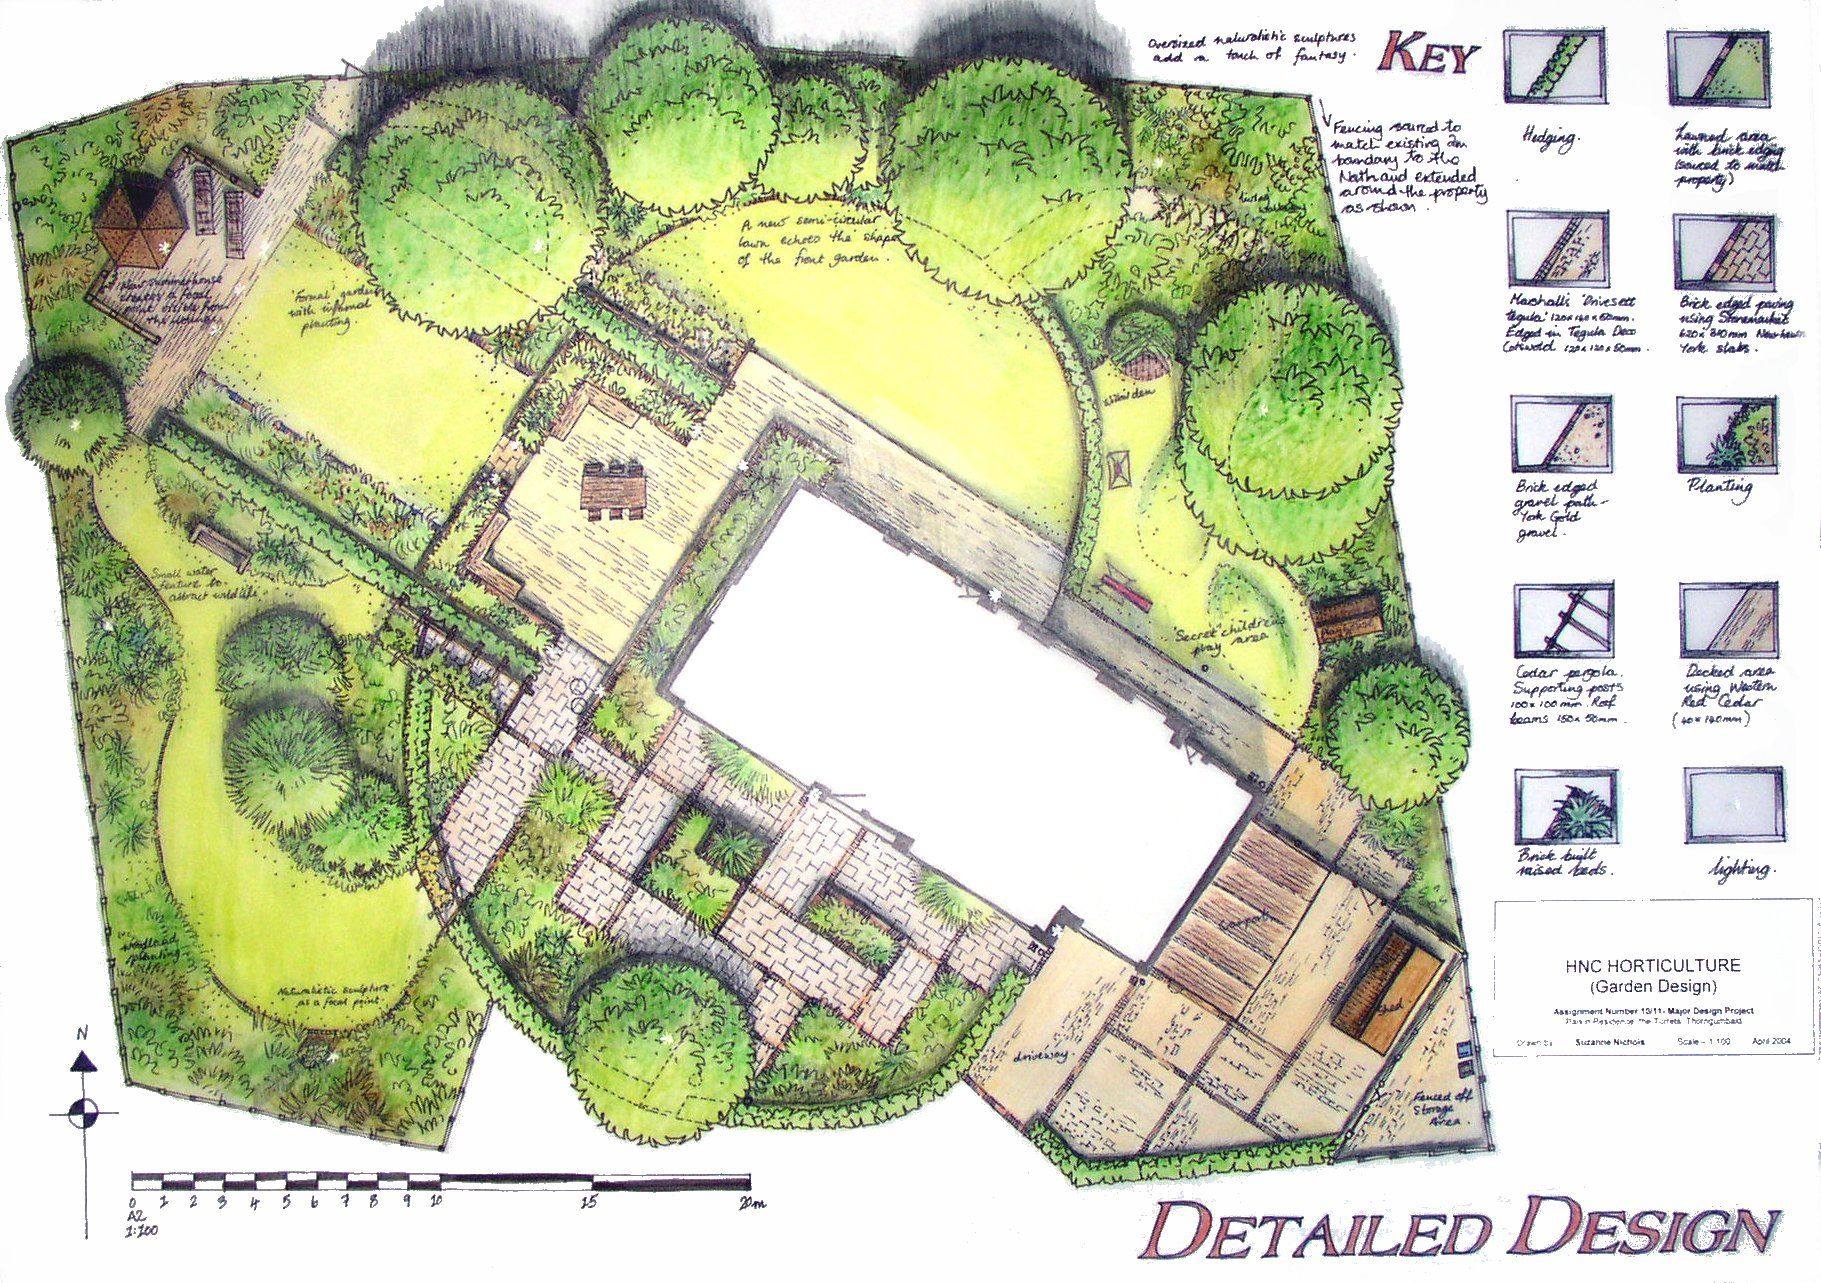 medicinal herb garden design - Google Search | Healing Garden ... on daylily garden design plans, medicinal herbs chart, japanese garden design plans, flower garden design plans, butterfly garden design plans,